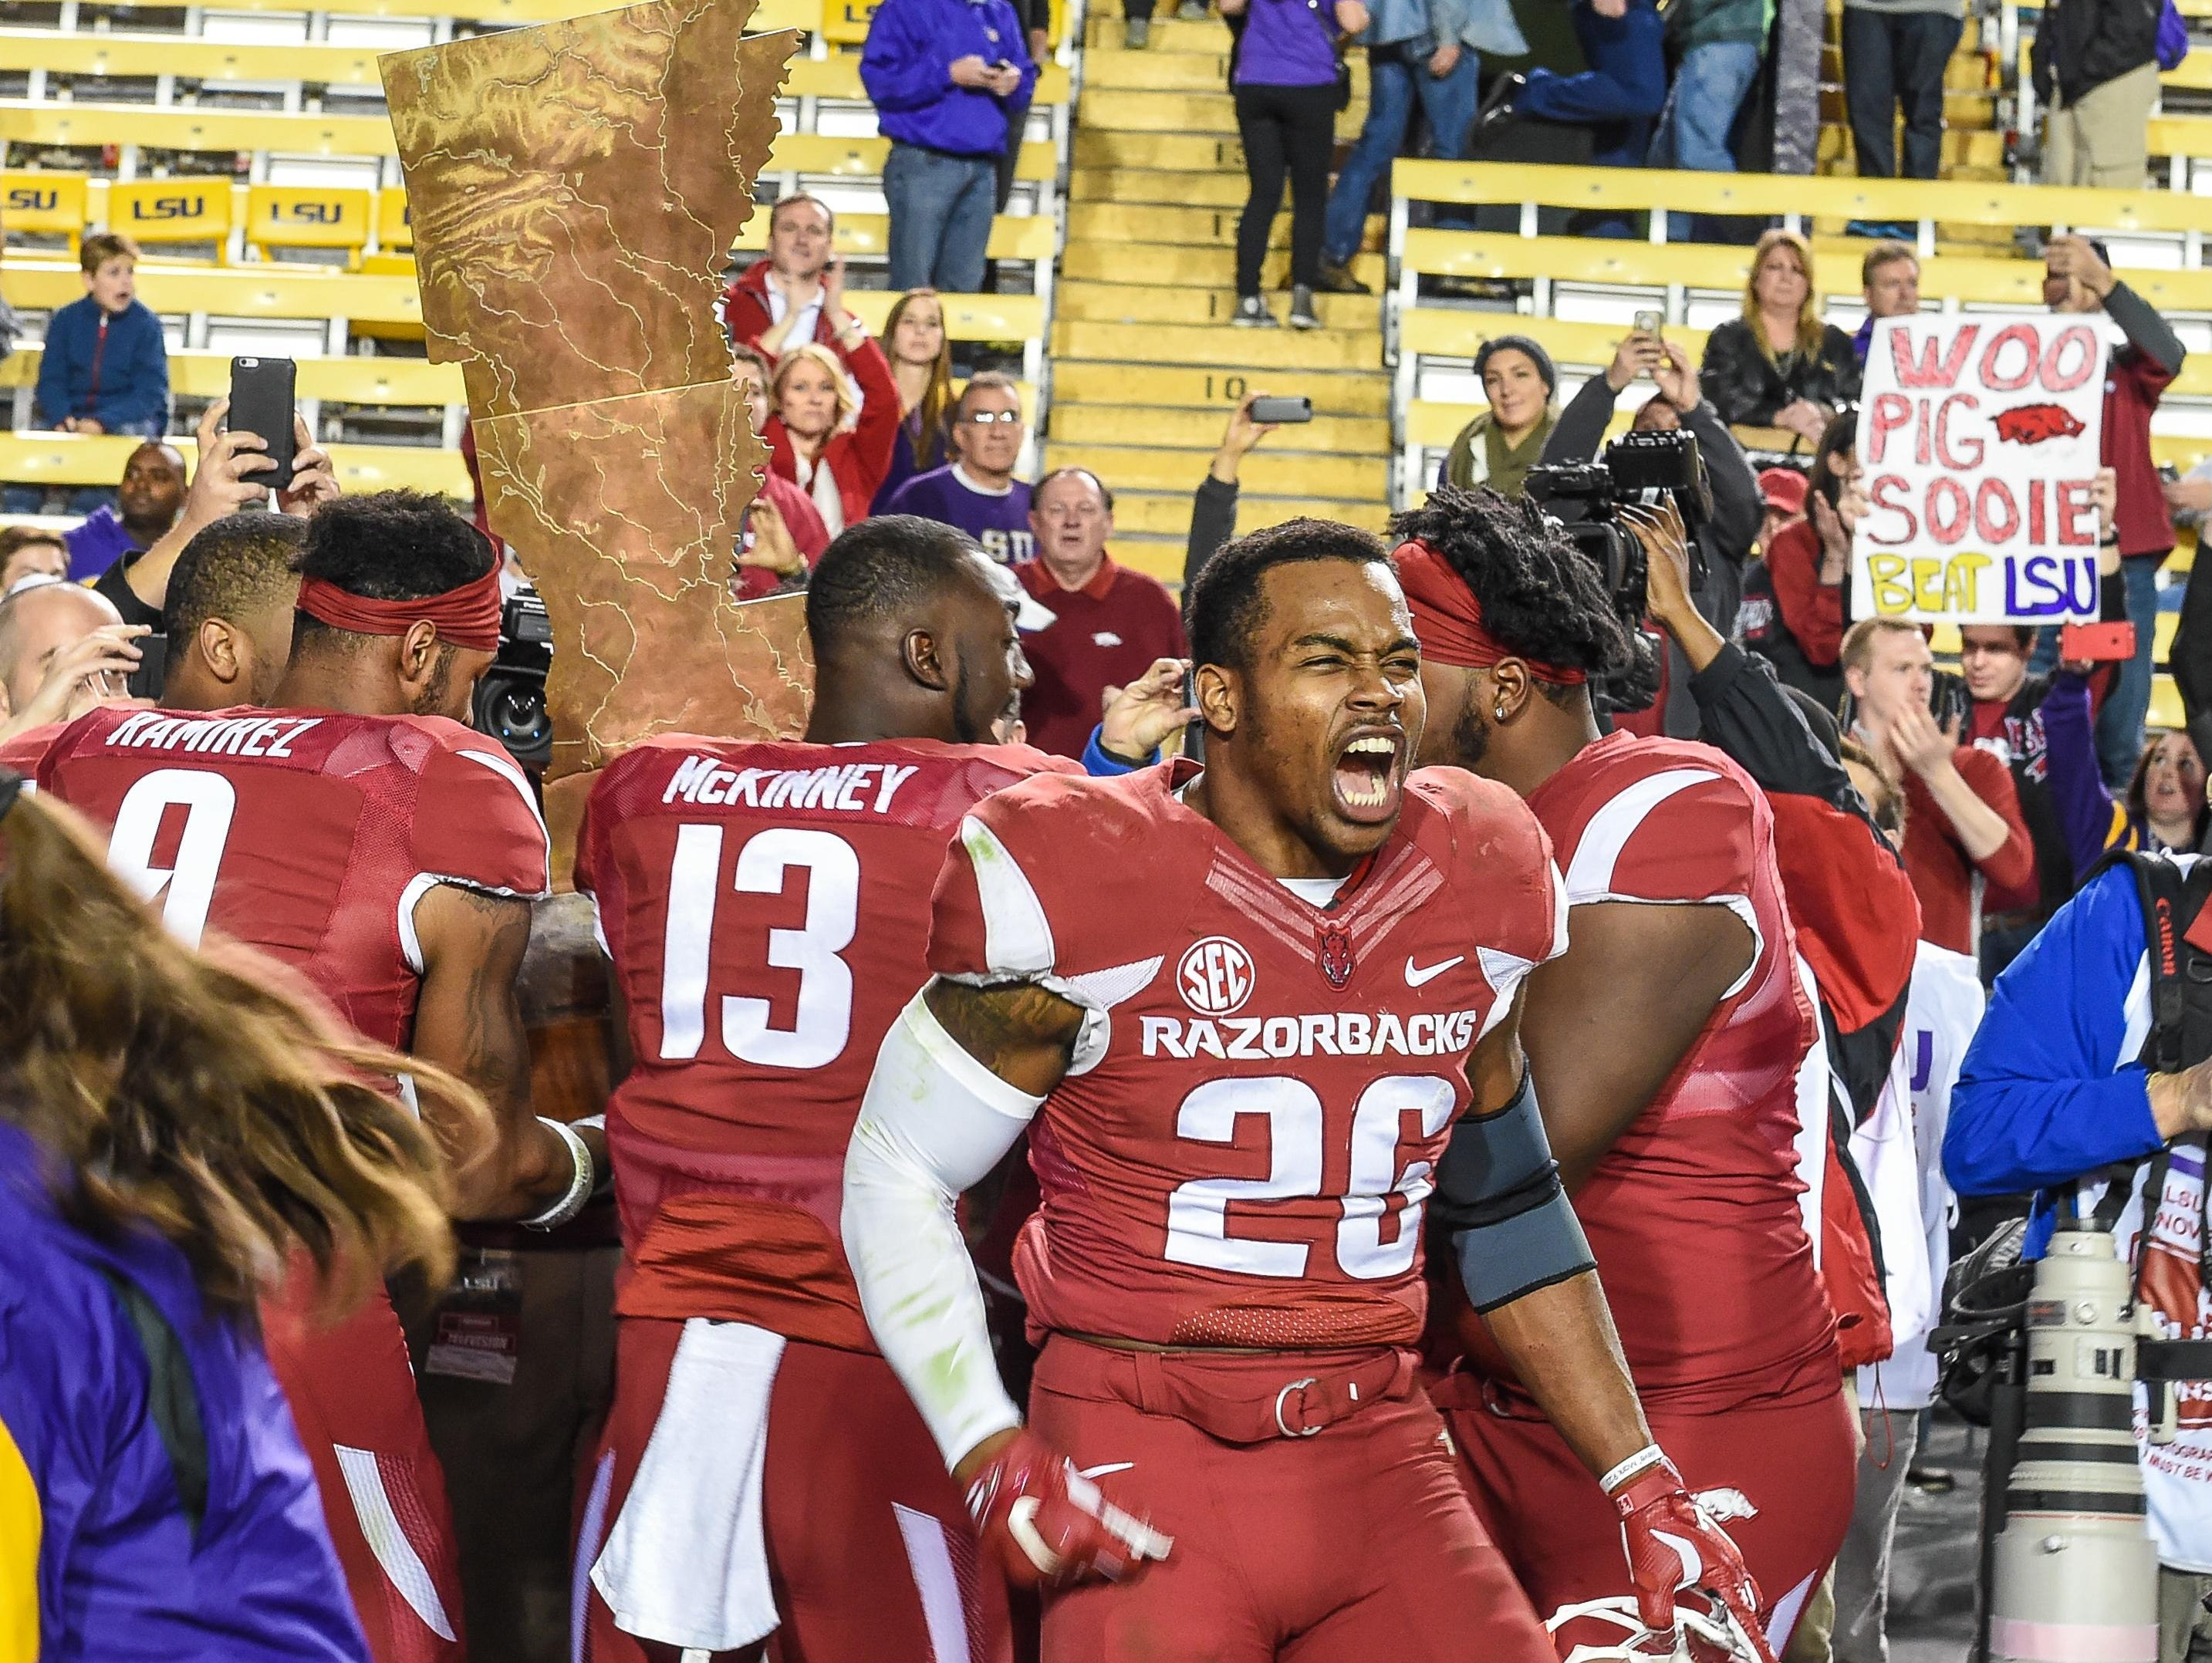 Arkansas defensive back Rohan Gaines (26) and teammates celebrate with The Golden Boot after winning a game against LSU on Saturday.